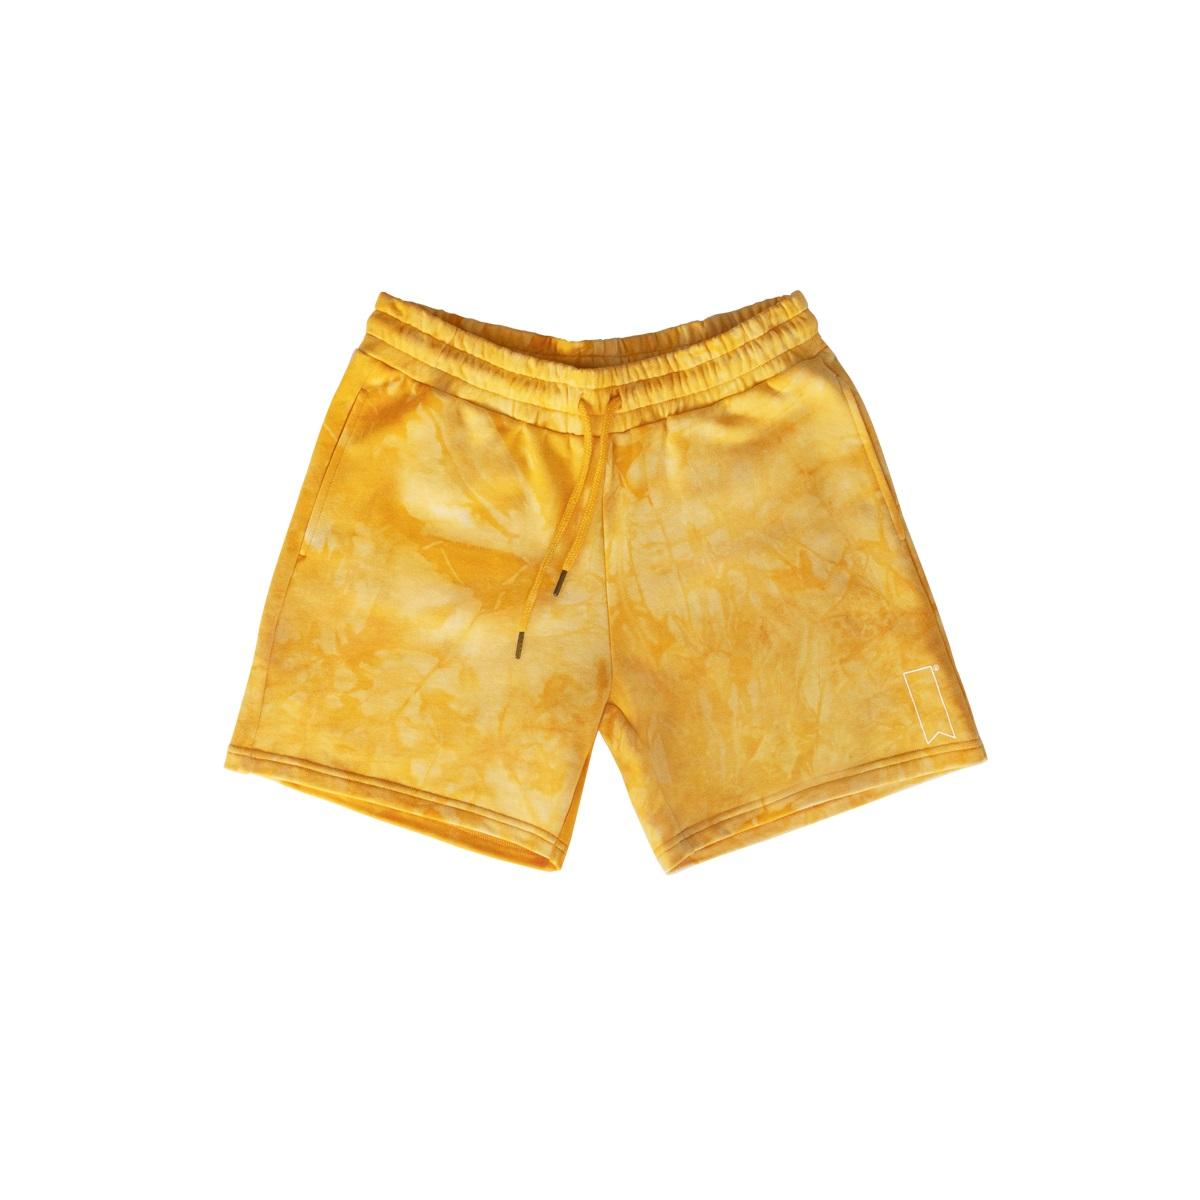 Dyed Gold Shorts